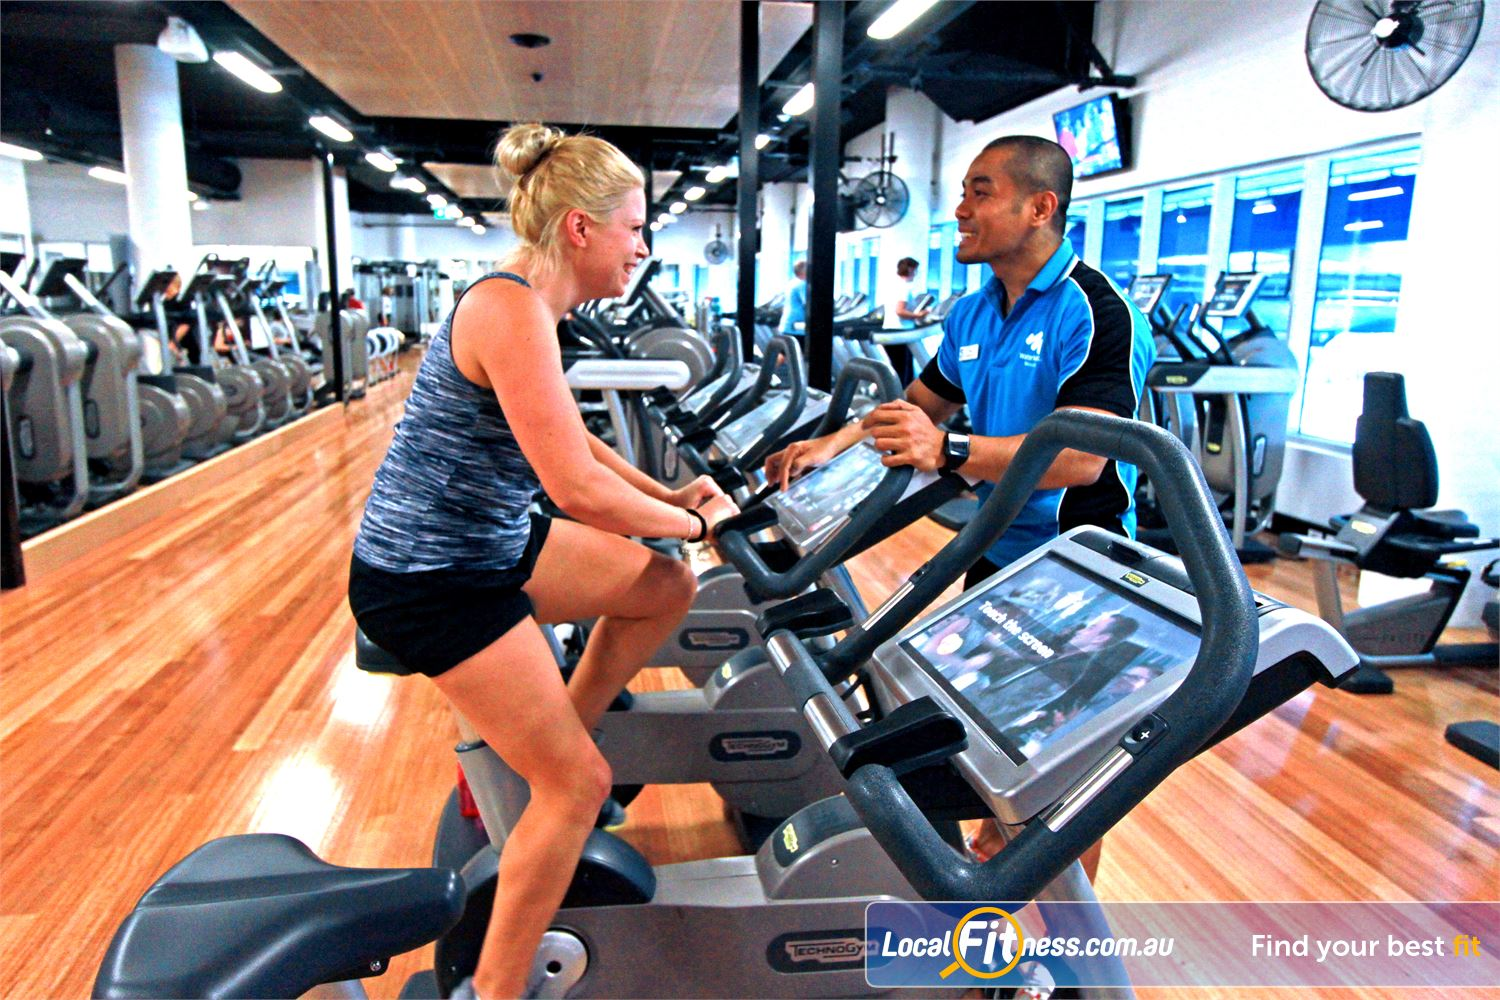 WaterMarc Aquatic & Leisure Centre Greensborough Greensborough gym instructors can tailor a cardio program to suit you.